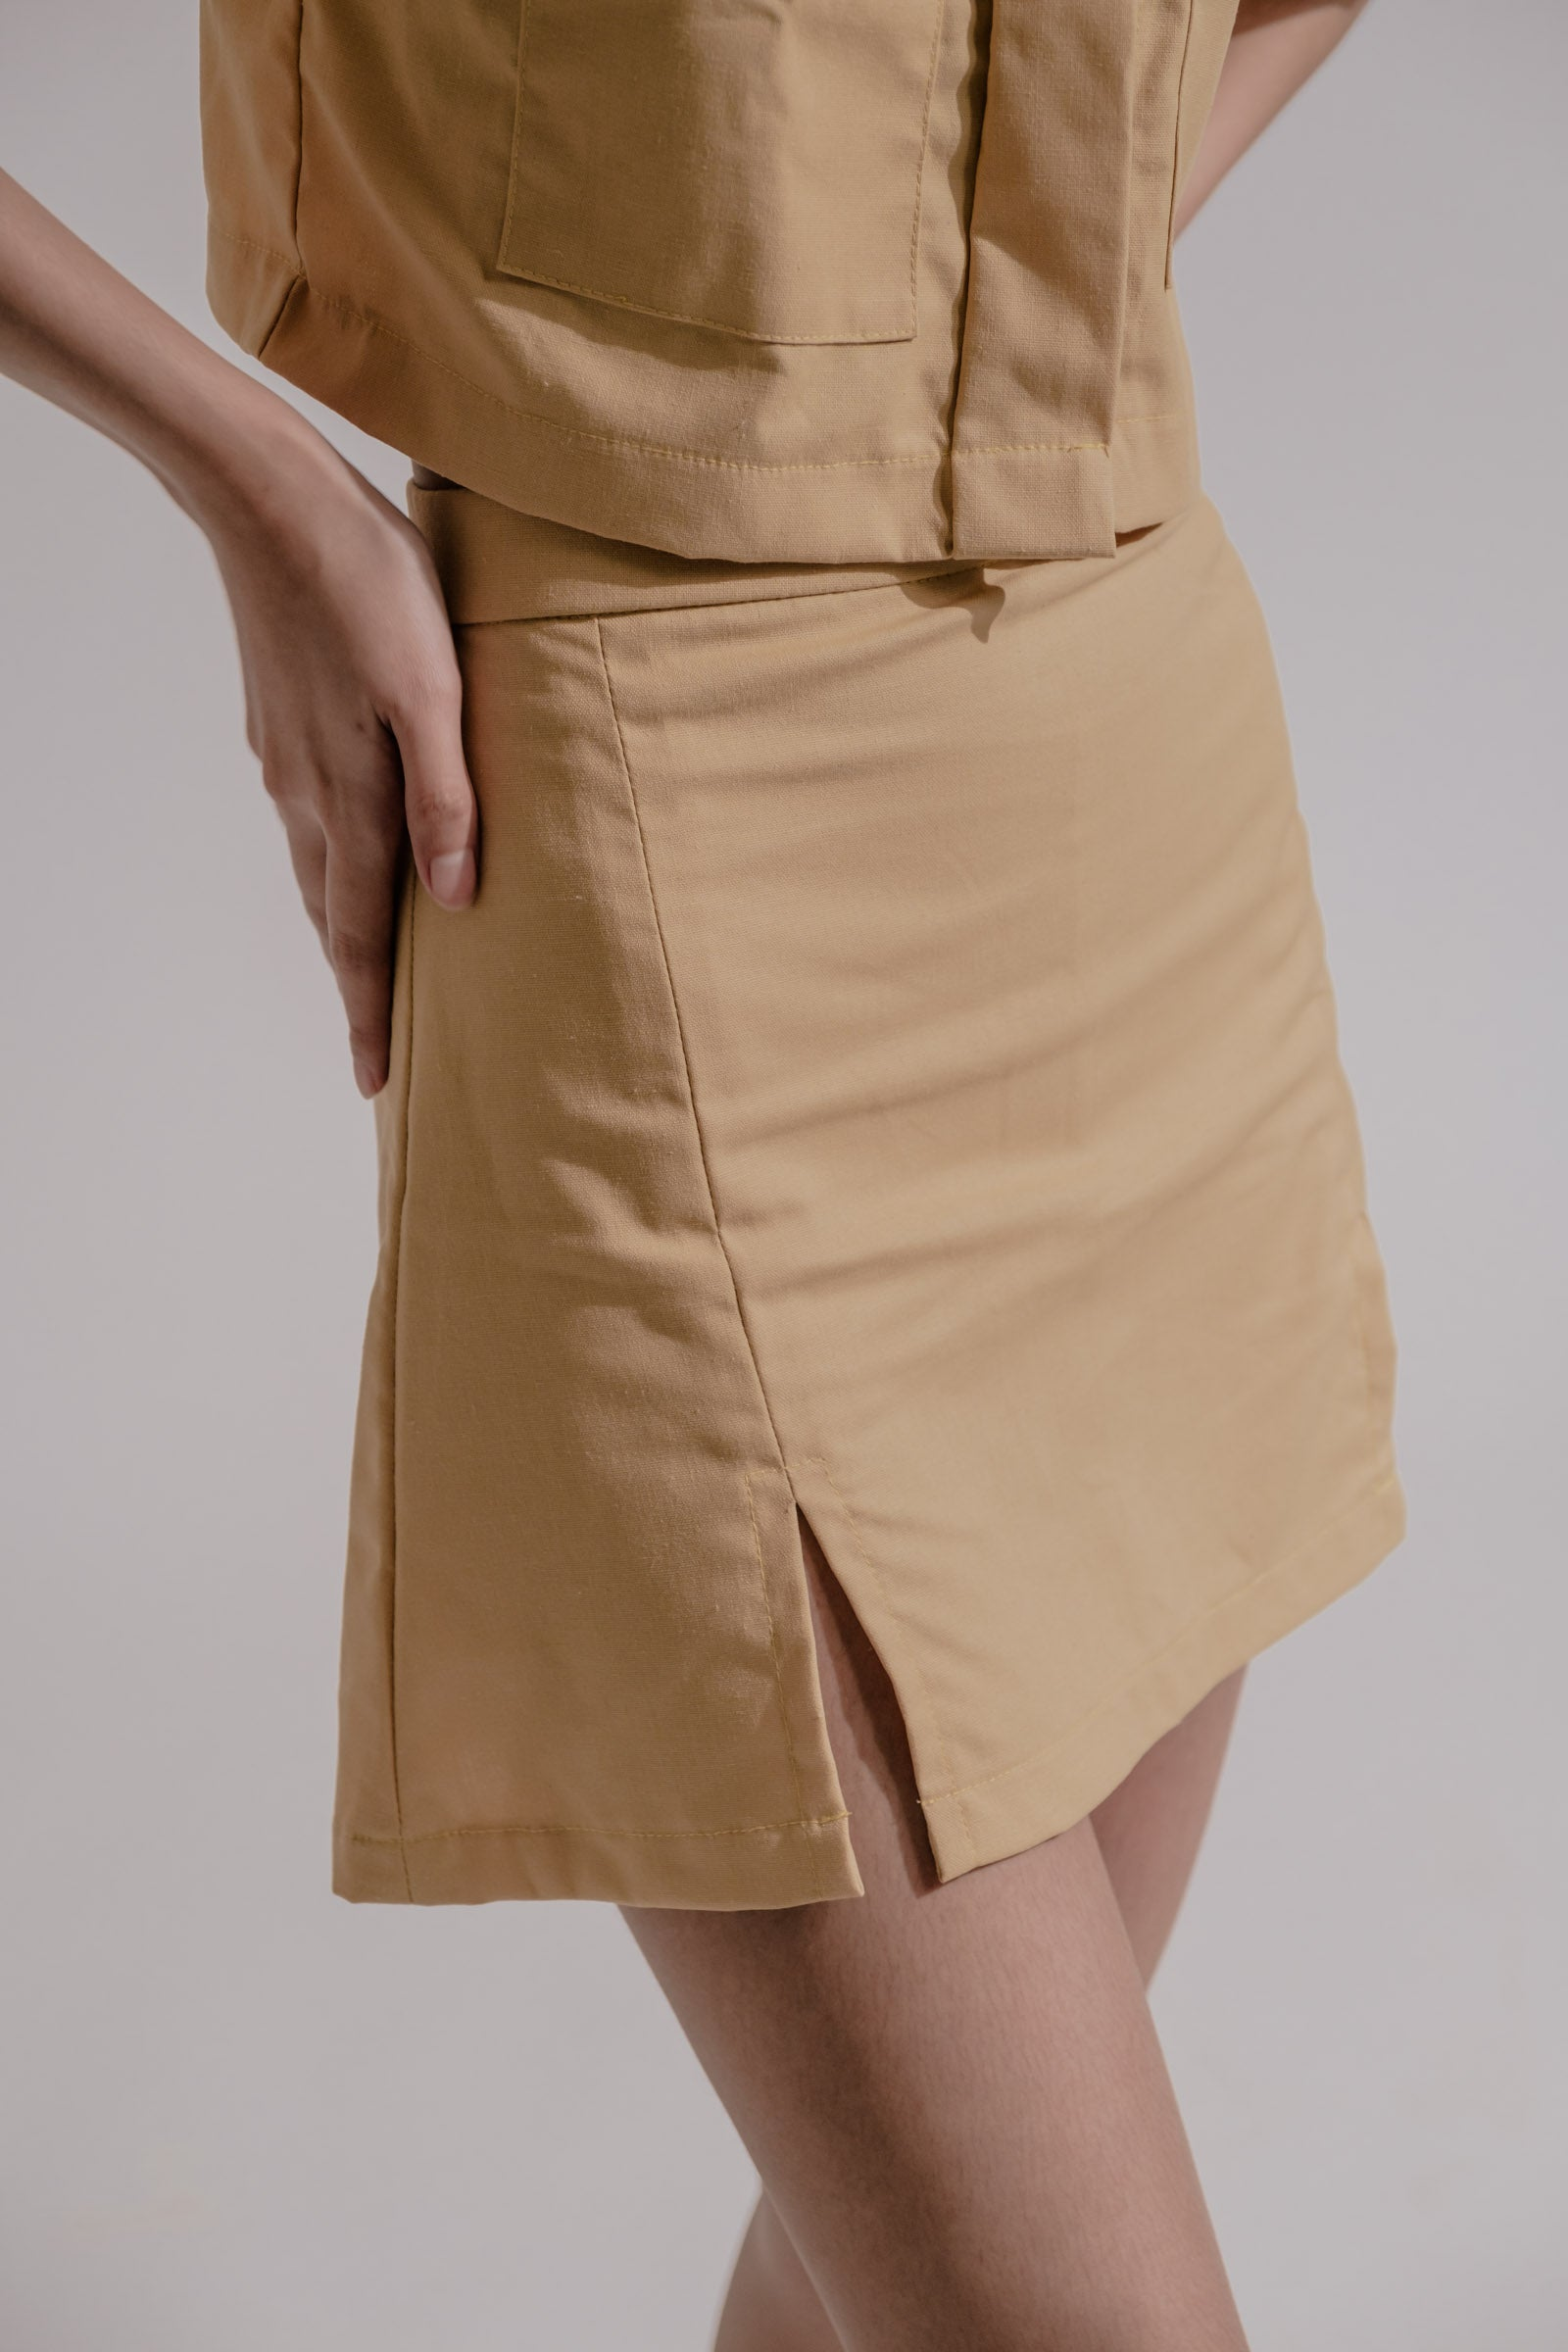 Rekindle Skirt in Sun